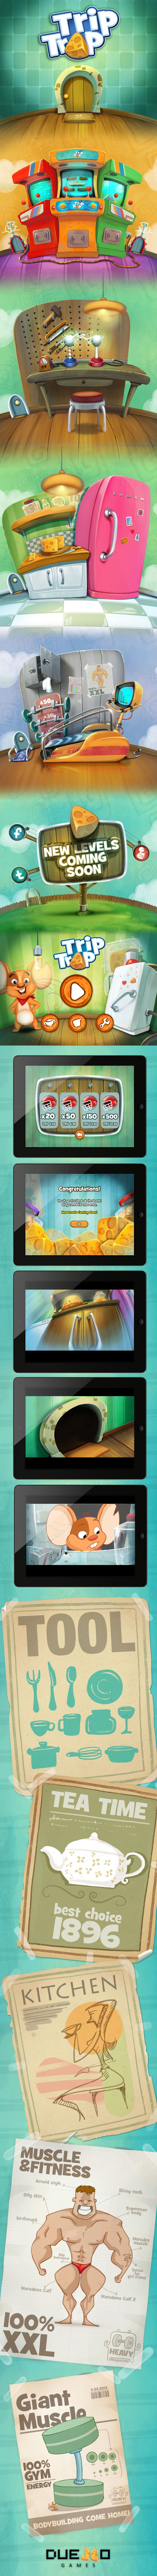 """TripTrap"" iphone/ipad game on Behance"